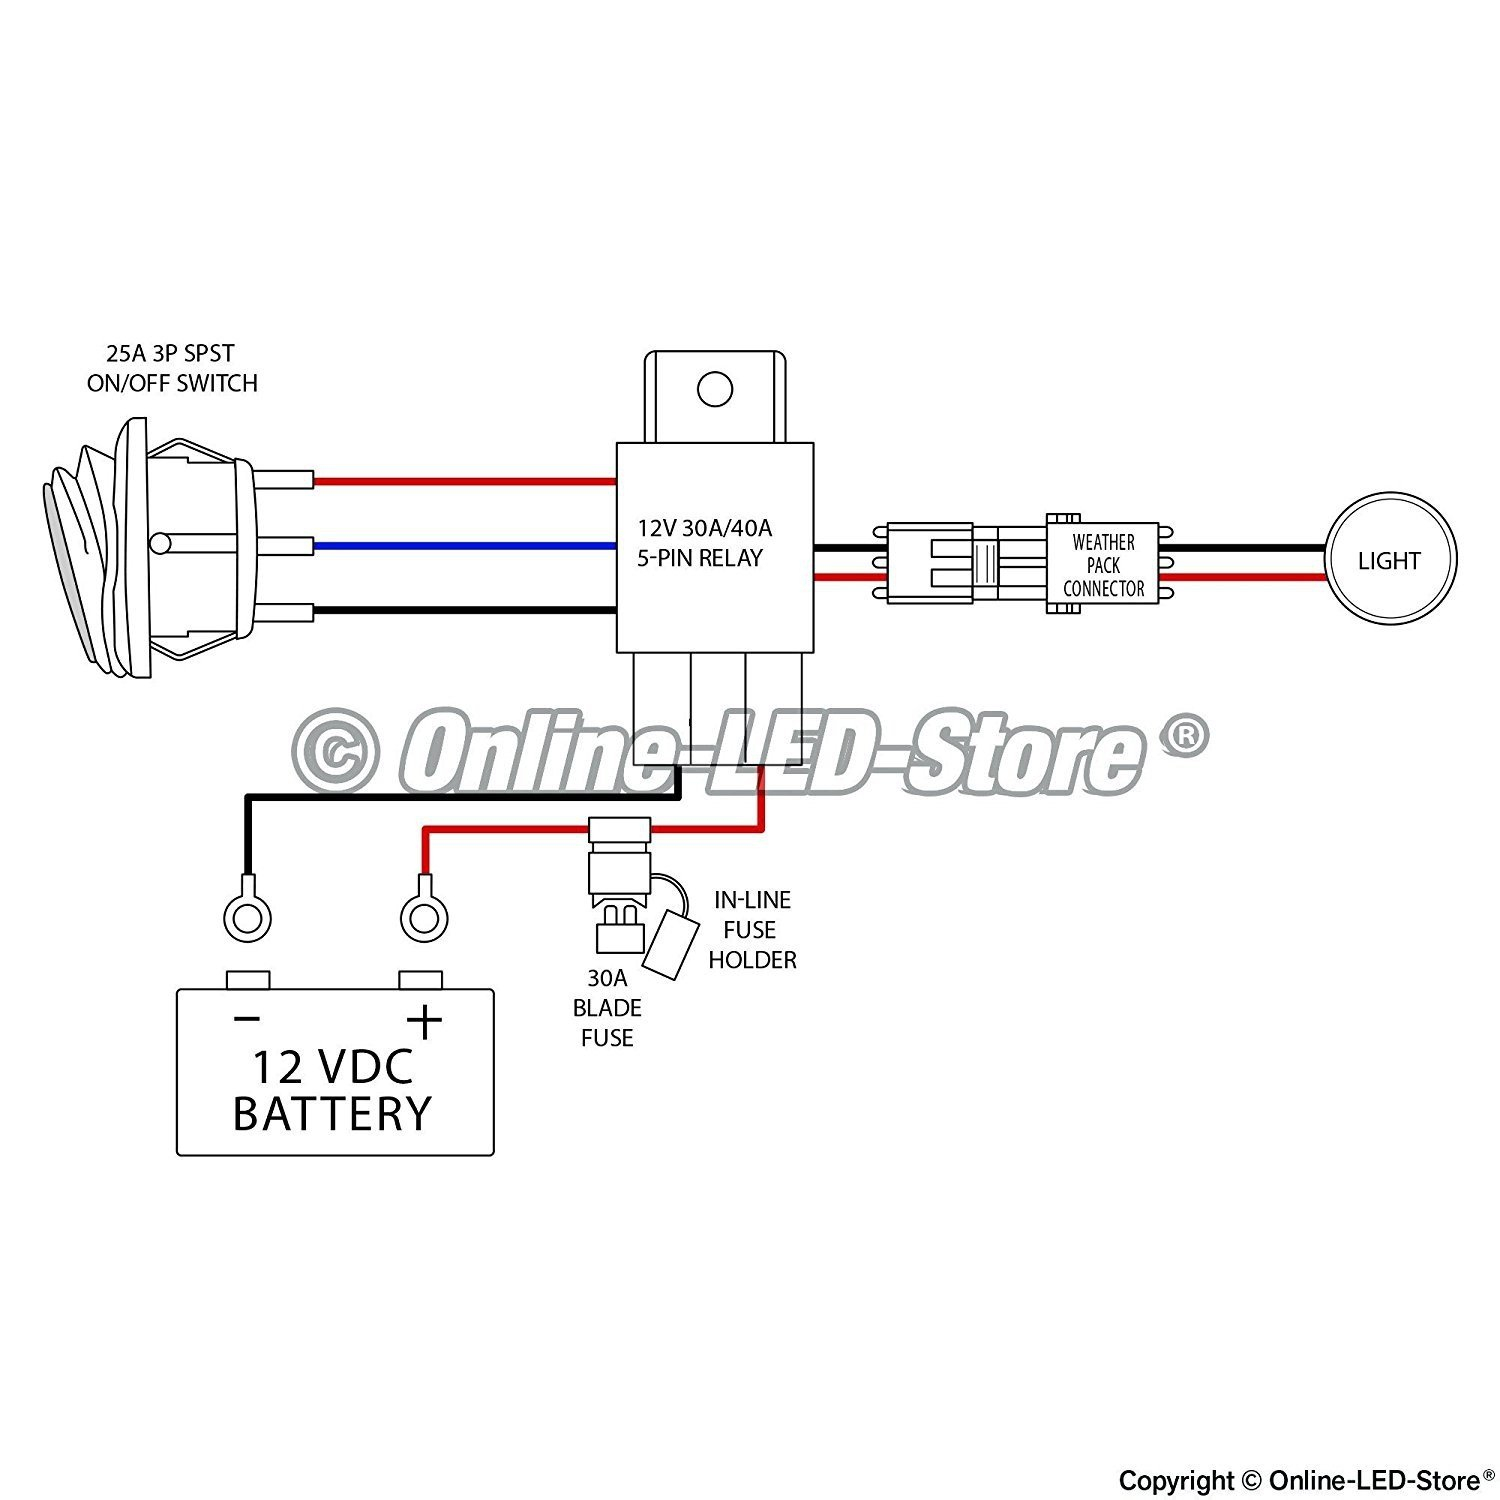 Mictuning Wiring Diagram - Simple Wiring Diagram - Mictuning Usb Toggle Switch Wiring Diagram